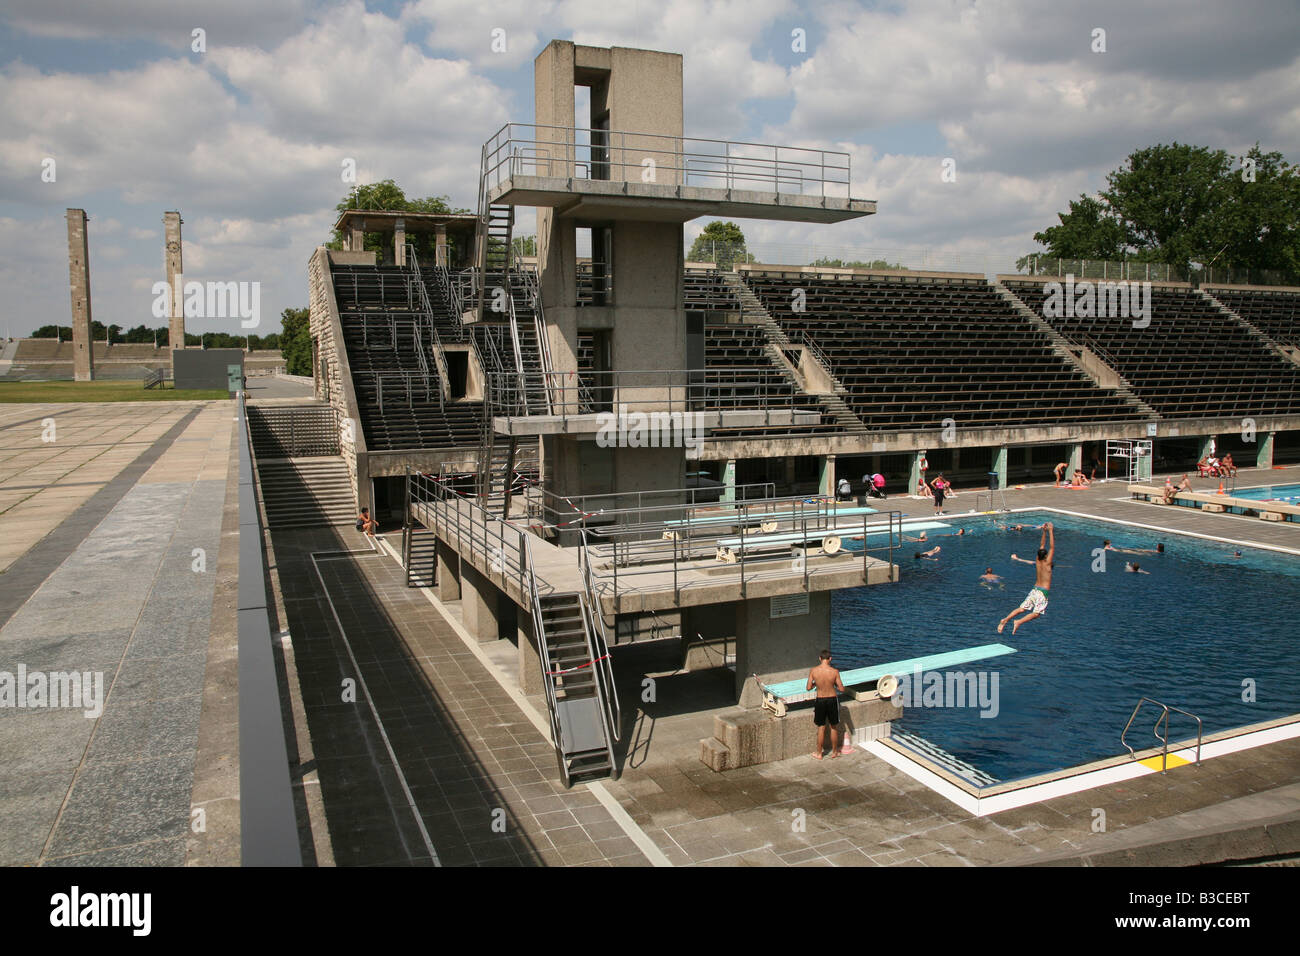 Swimming Pools In Berlin Olympic Swimming Pool In The Area Of The Olympia Stadium In Berlin